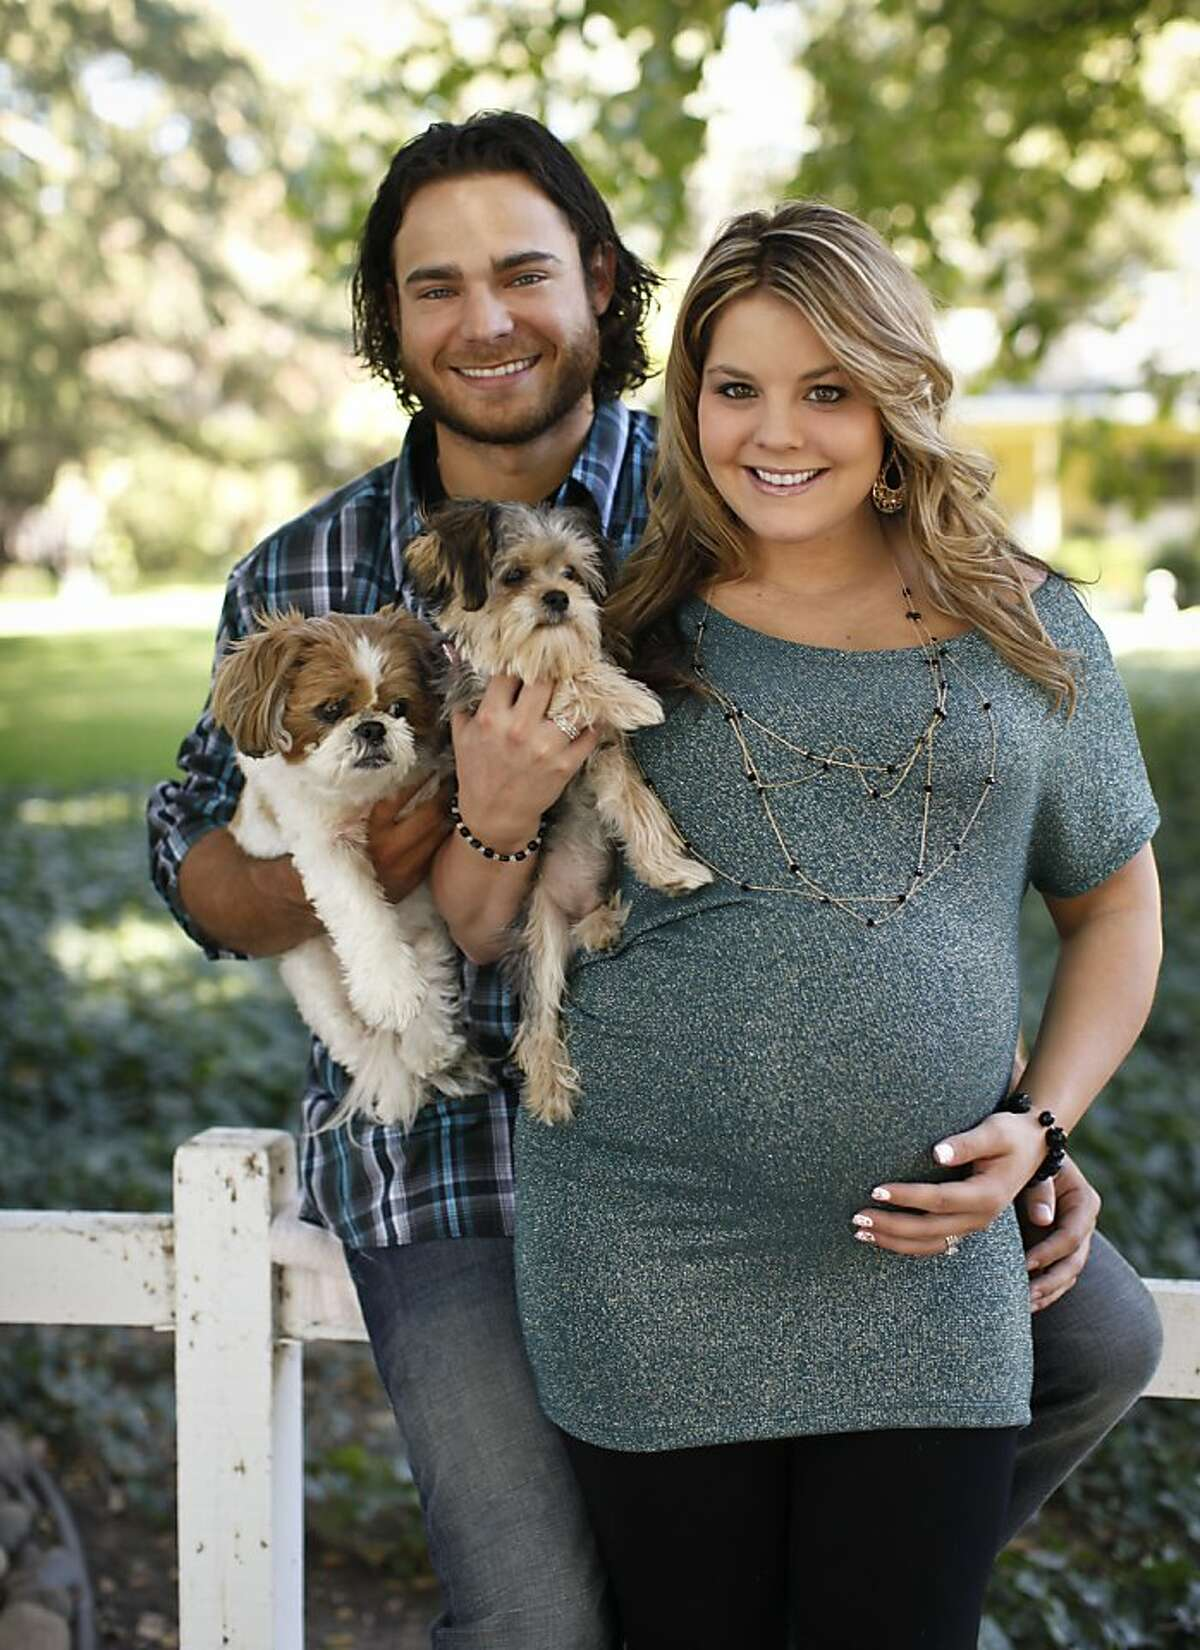 San Francisco Giants' shortstop Brandon Crawford and his wife, Jaylynne, seen with their dogs Marley, left, and Koda on Thursday, Oct. 4, 2012 near the home they are staying in in Walnut Creek, Calif., are expecting their first child in December.